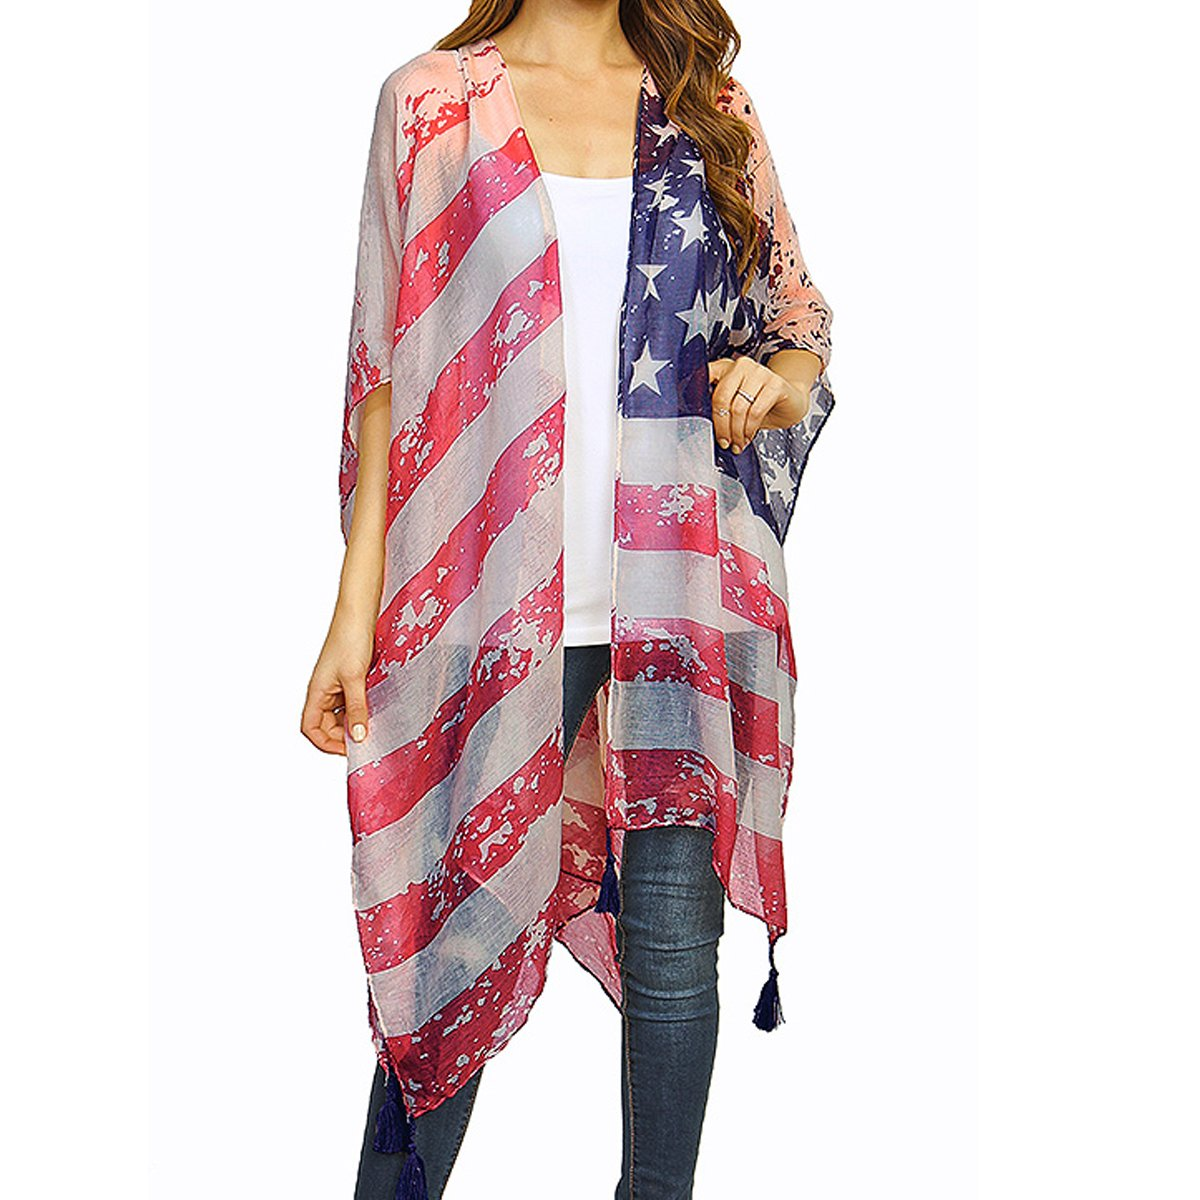 TD Collections Women's Faded American Flag Sleeveless Cardigan Vest (Gray/Pink Tassle)